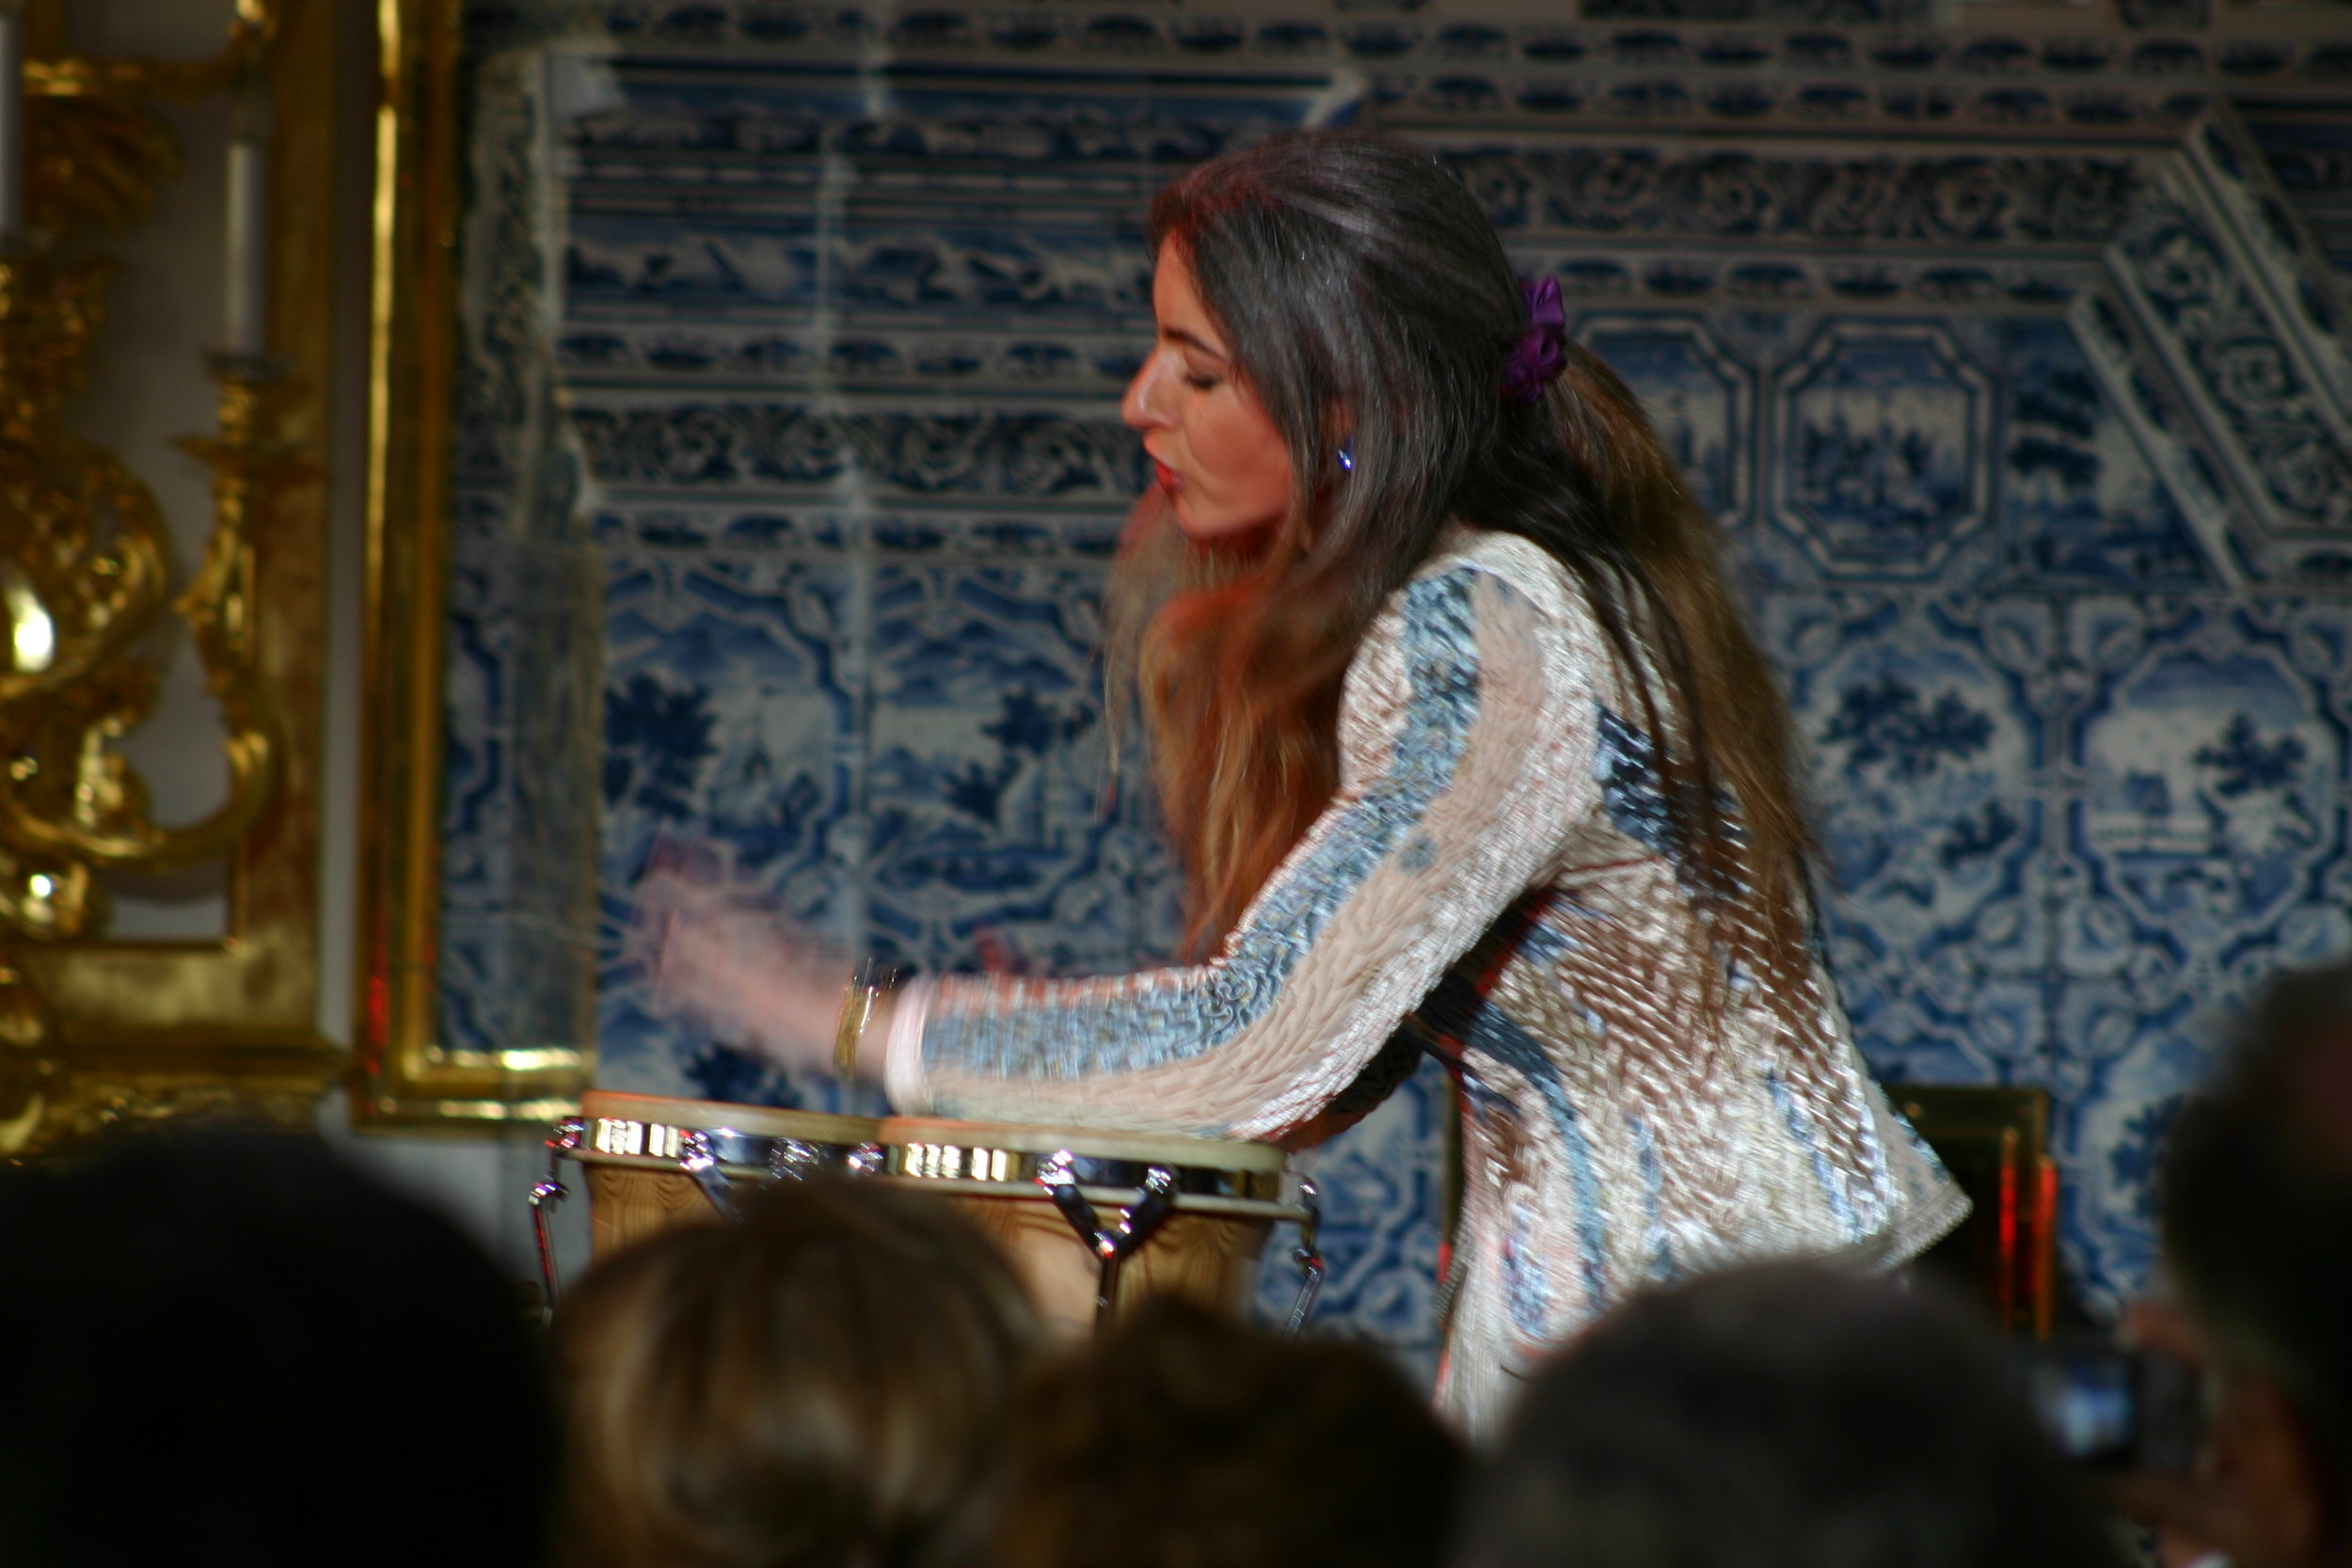 Dame Evelyn Glennie, percussionist